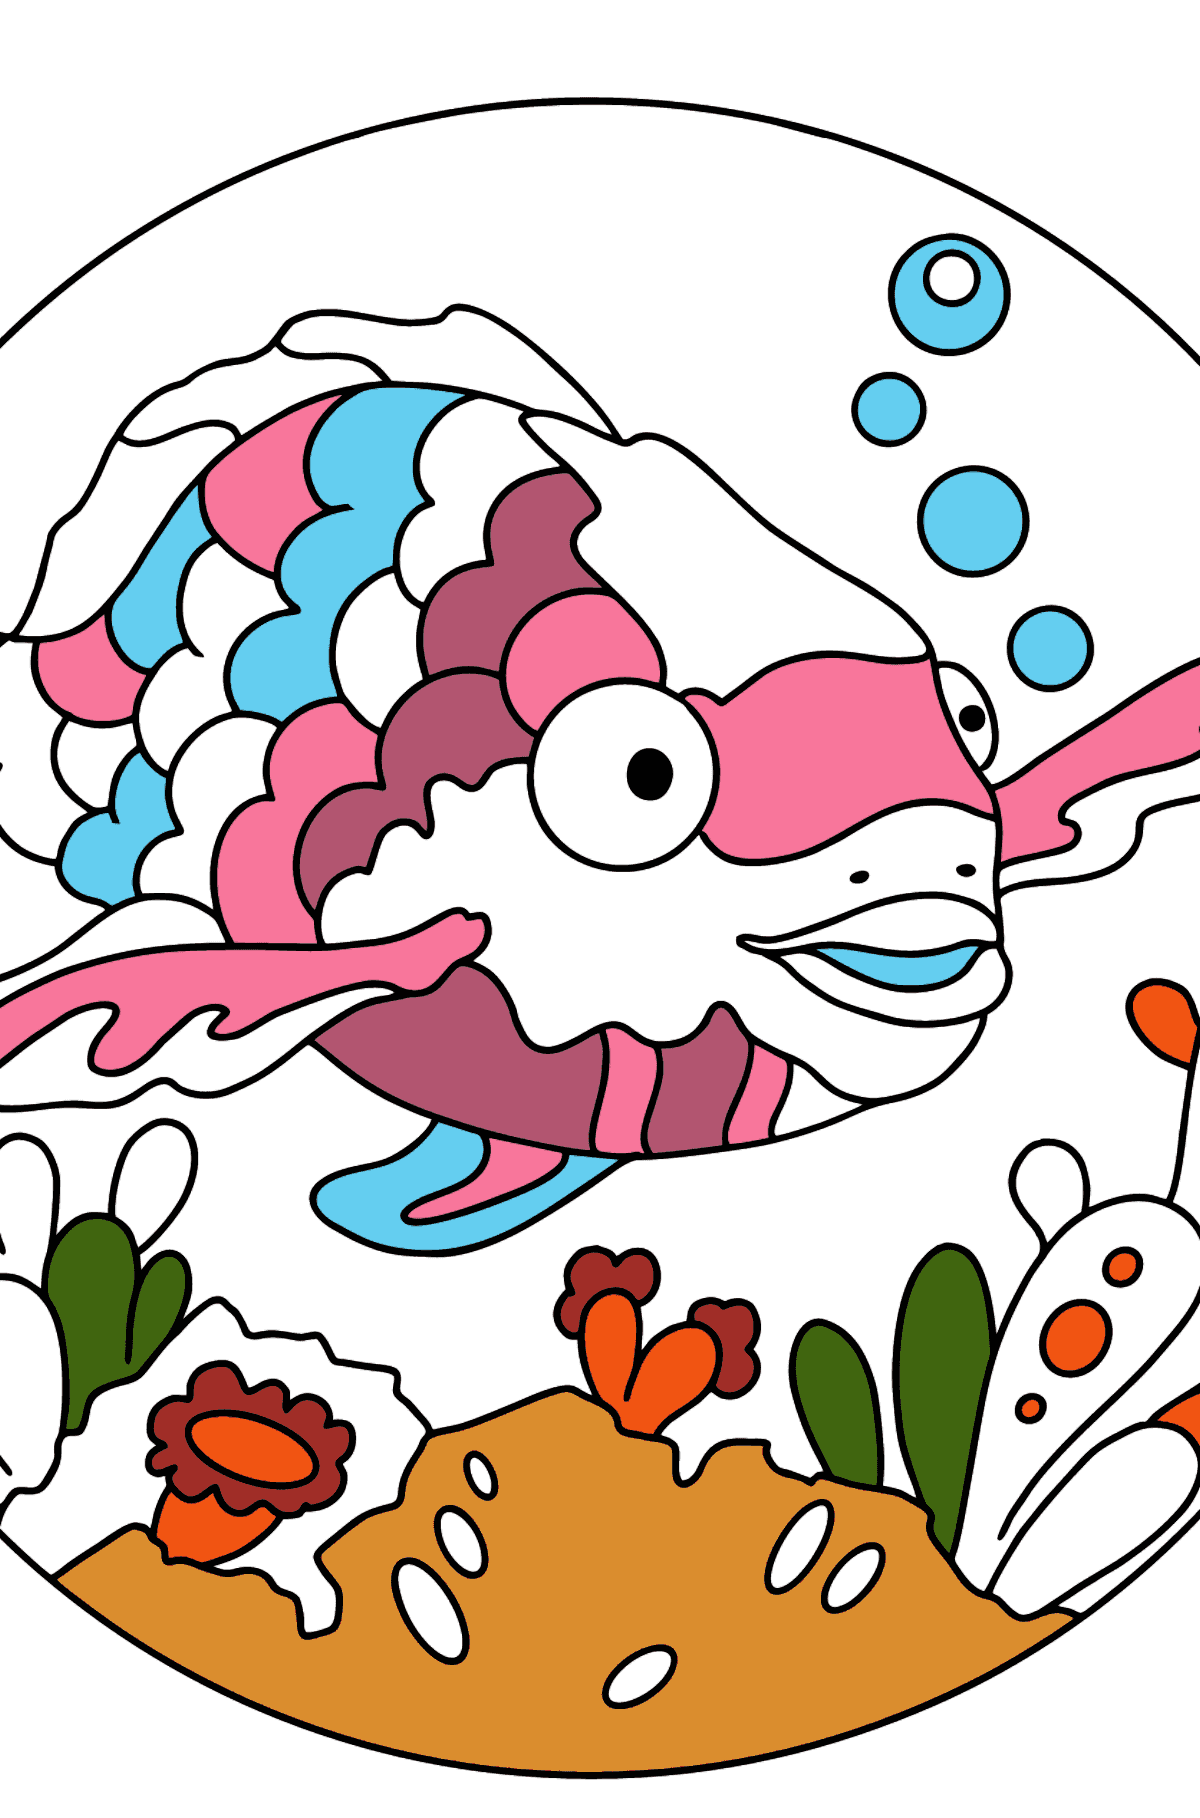 Coloring Page - A Fish with Beautiful Scales - Coloring Pages for Kids